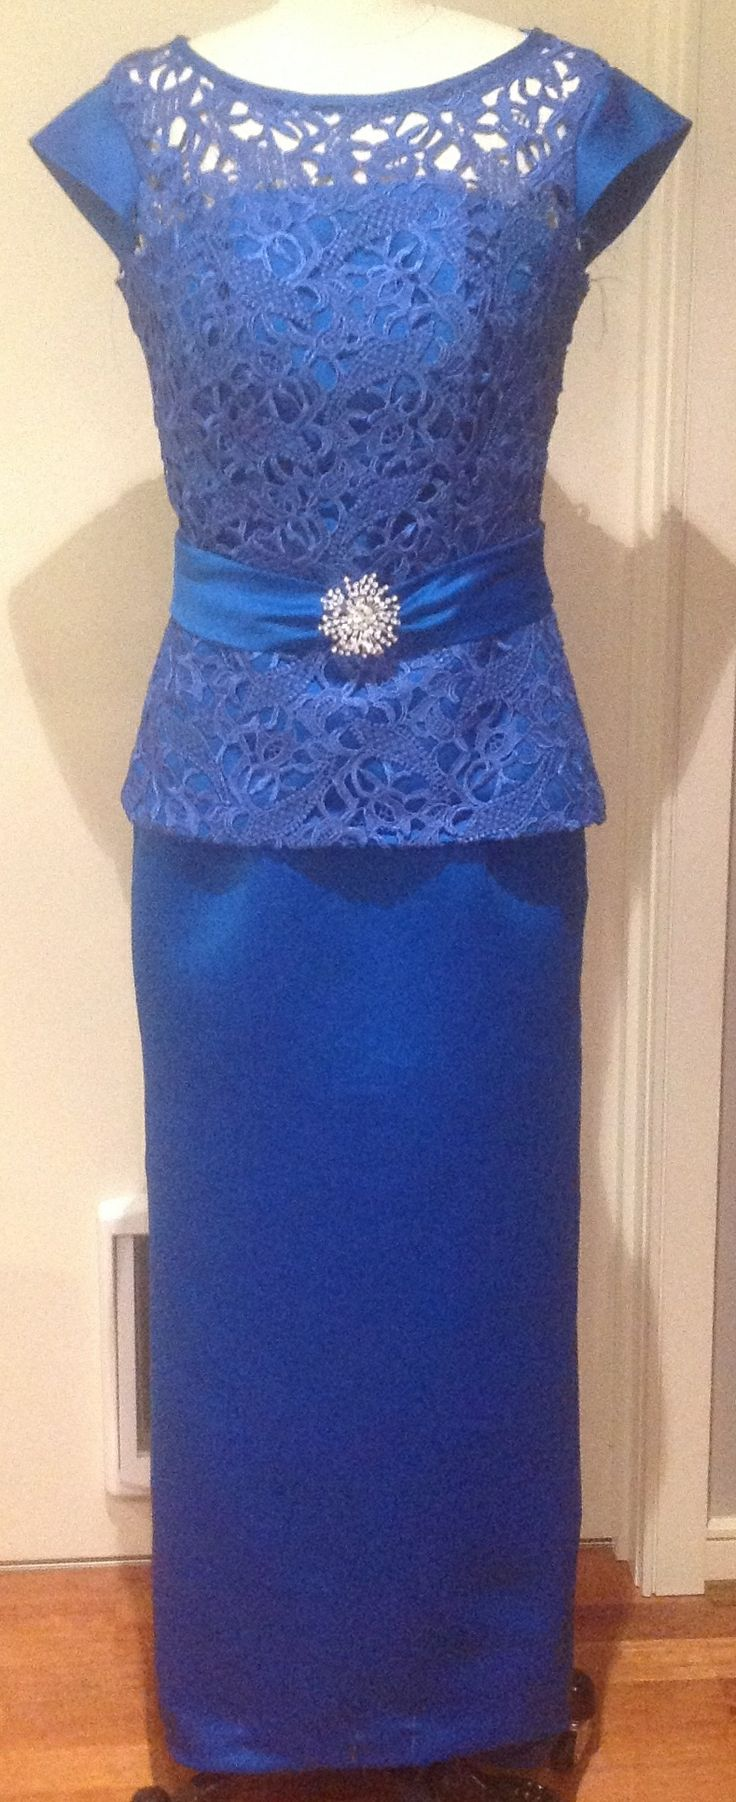 Brienne's school formal gown Made by Gowns of Elegance and Grace www.gownsofeleganceandgrace.com.au